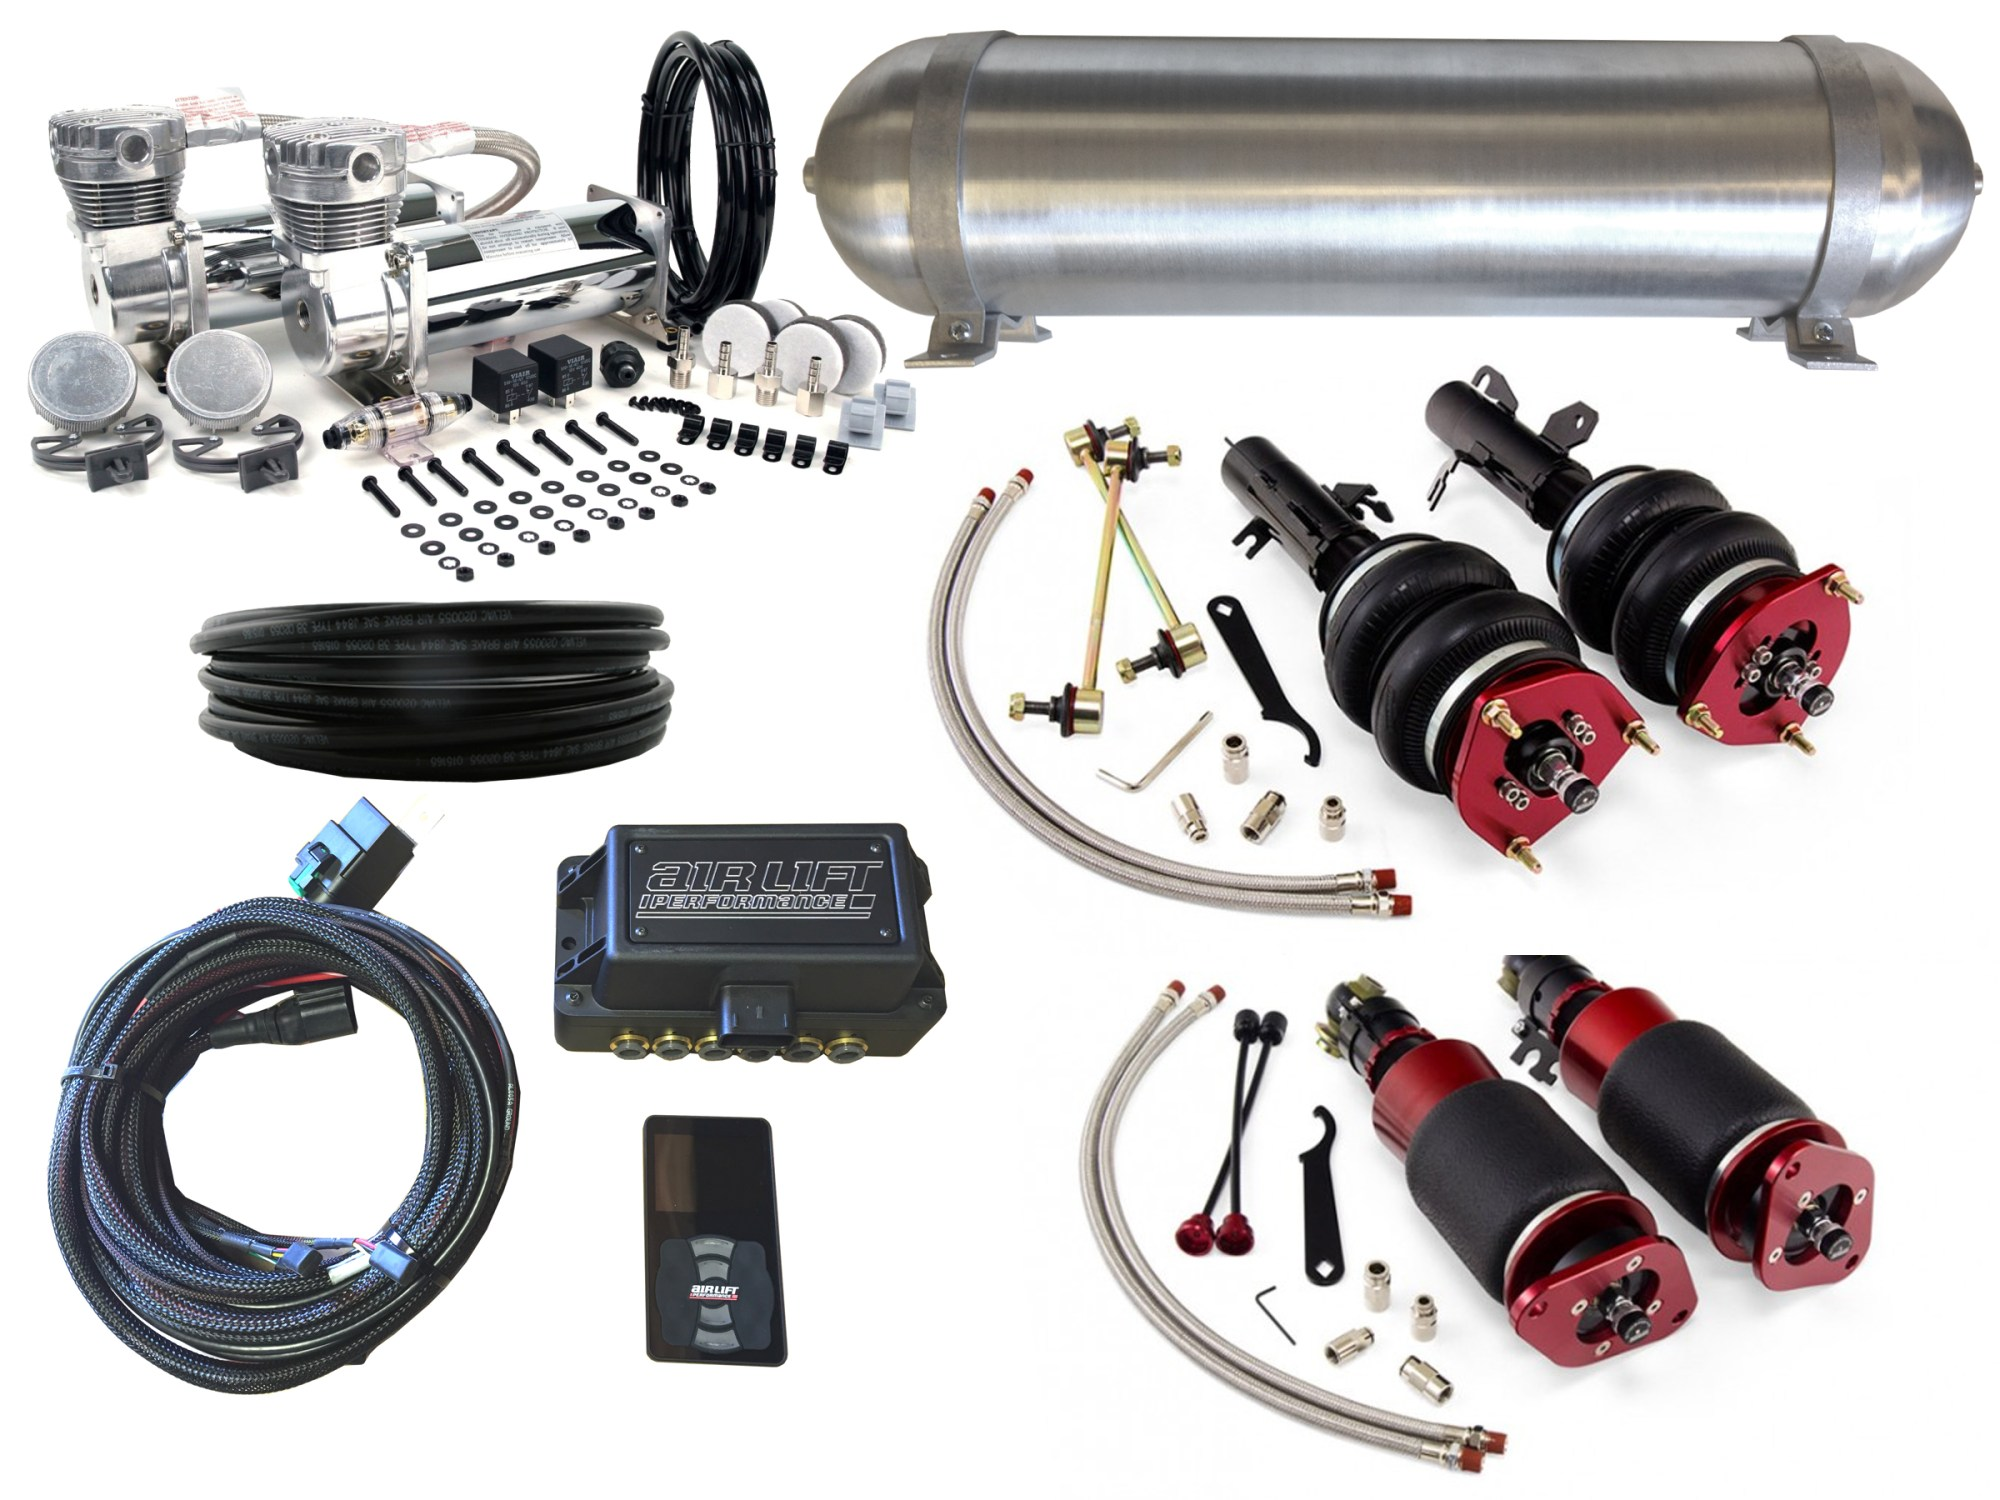 hight resolution of 02 06 mini cooper r50 r52 r53 airbag suspension kit level 4 with air lift performance 3p management